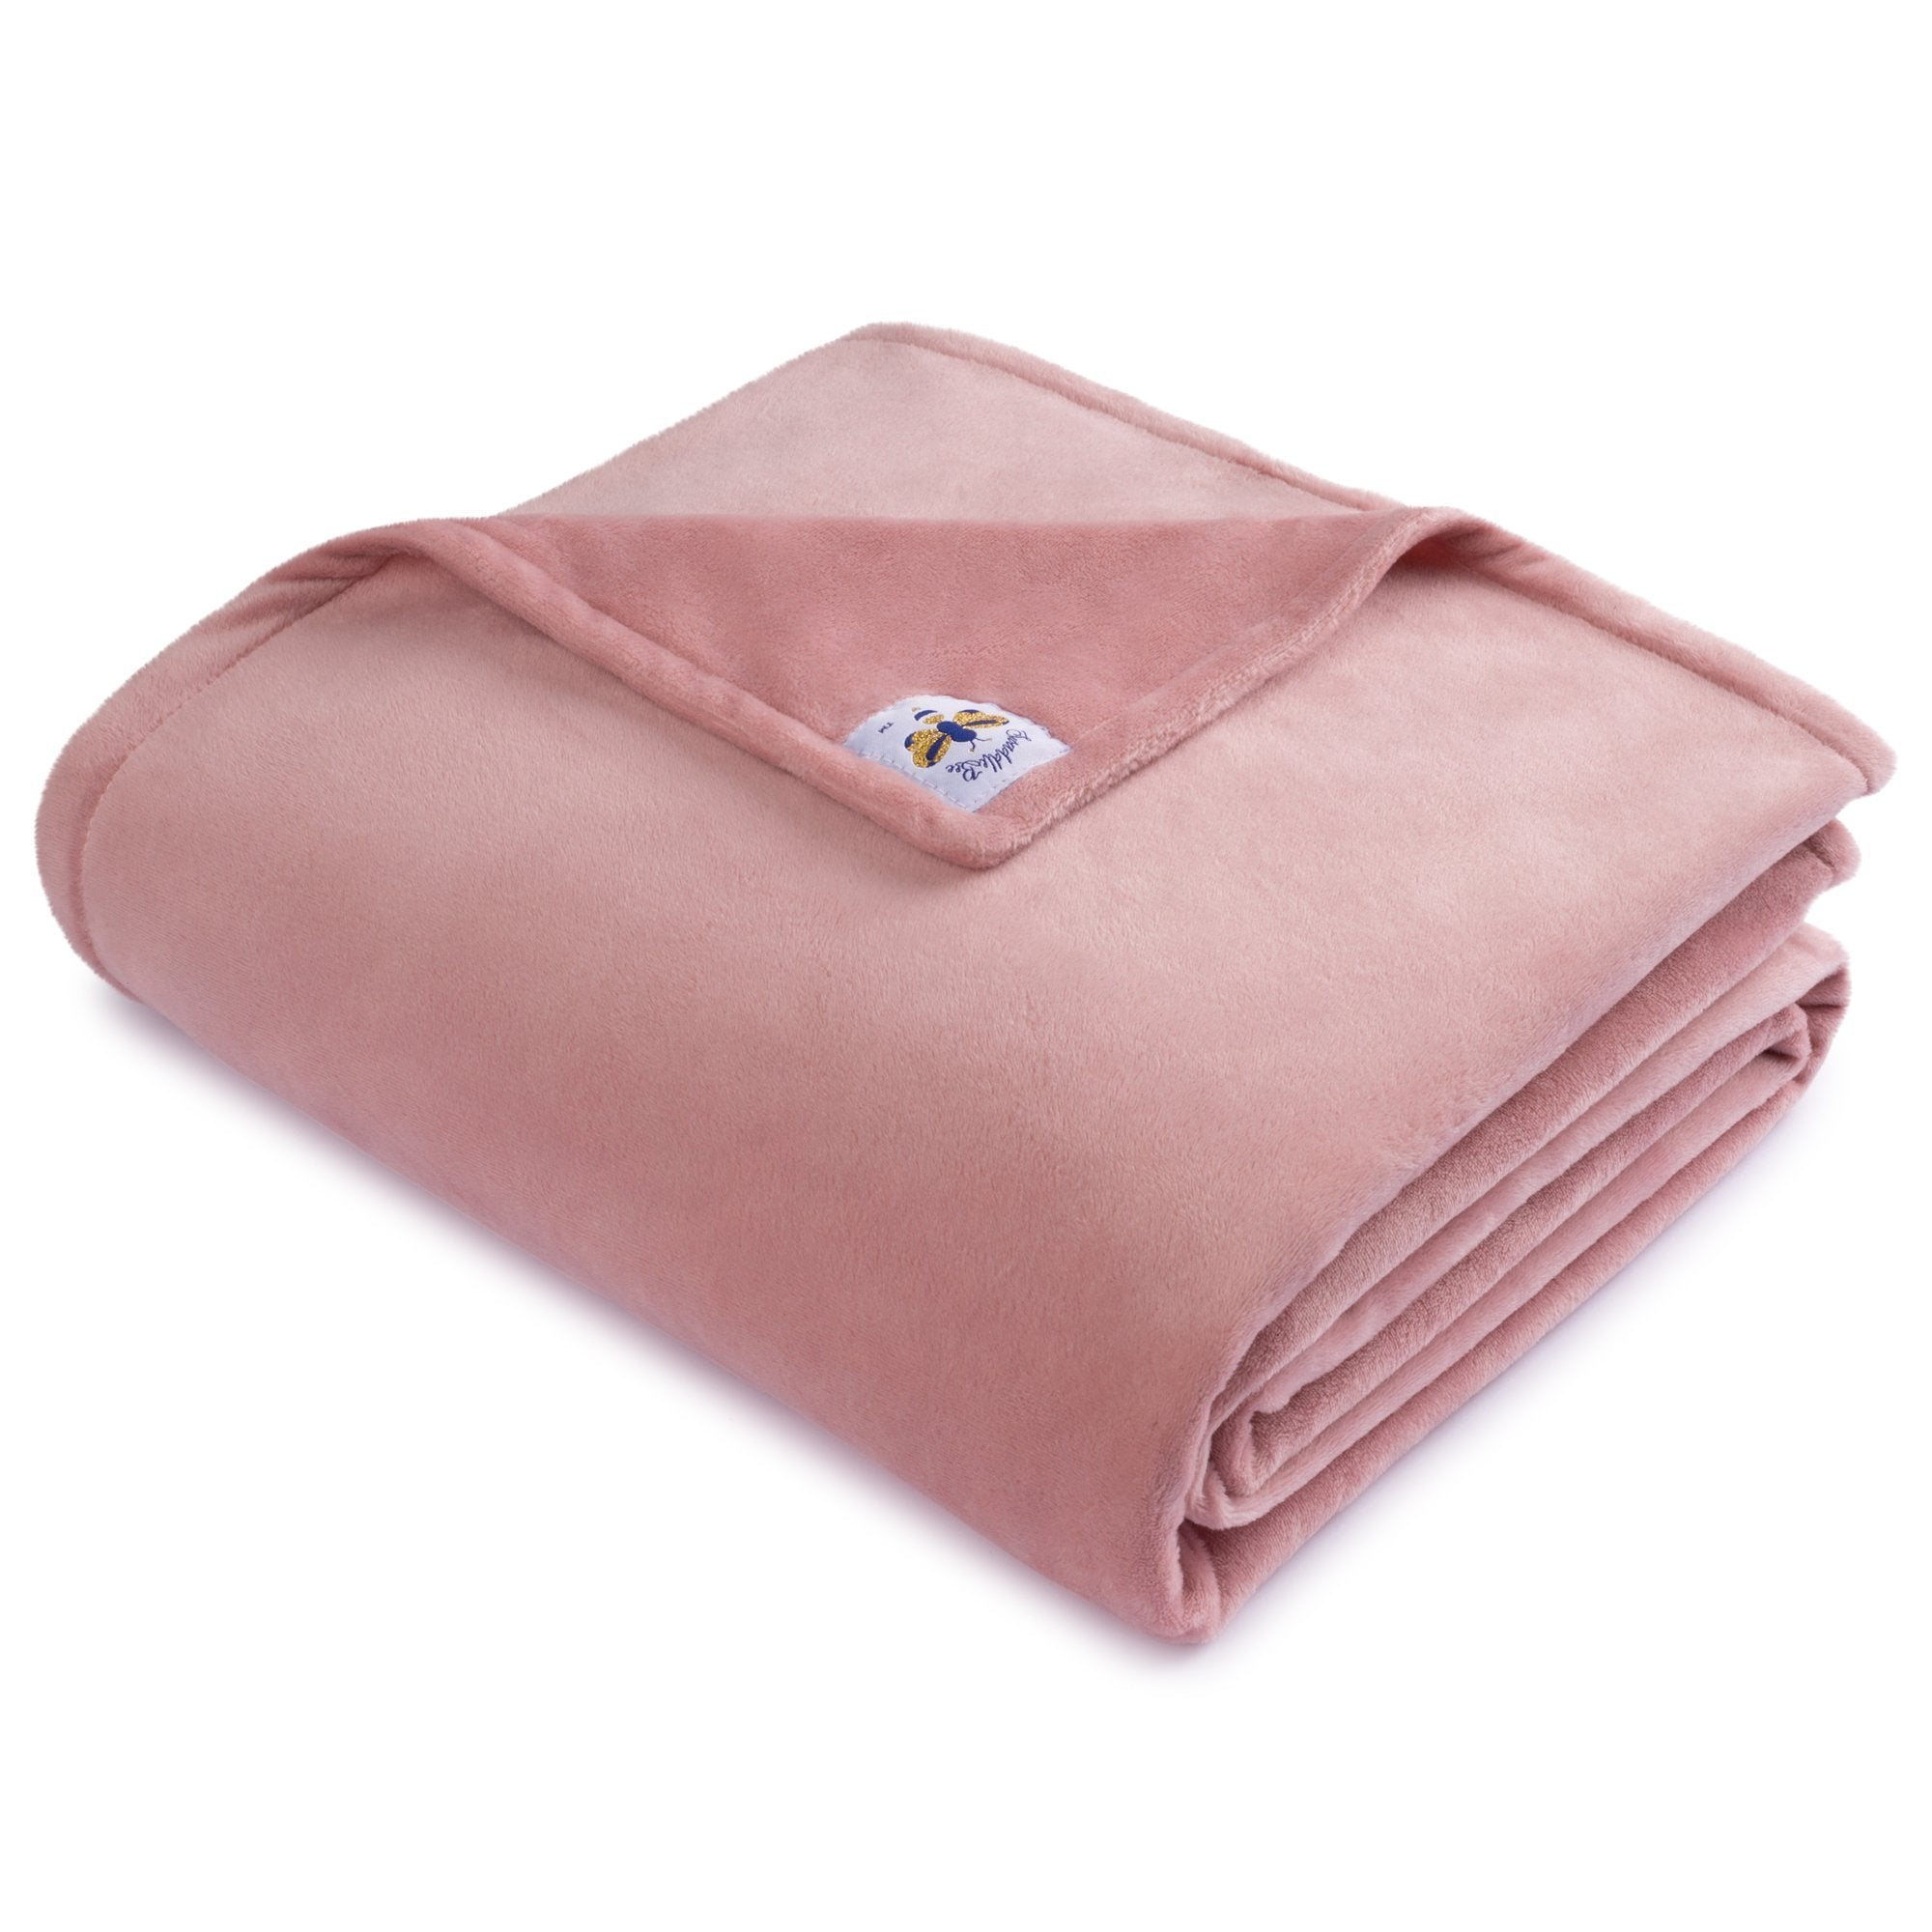 MegaBee Minky Throw Blanket Solid Dusty Pink